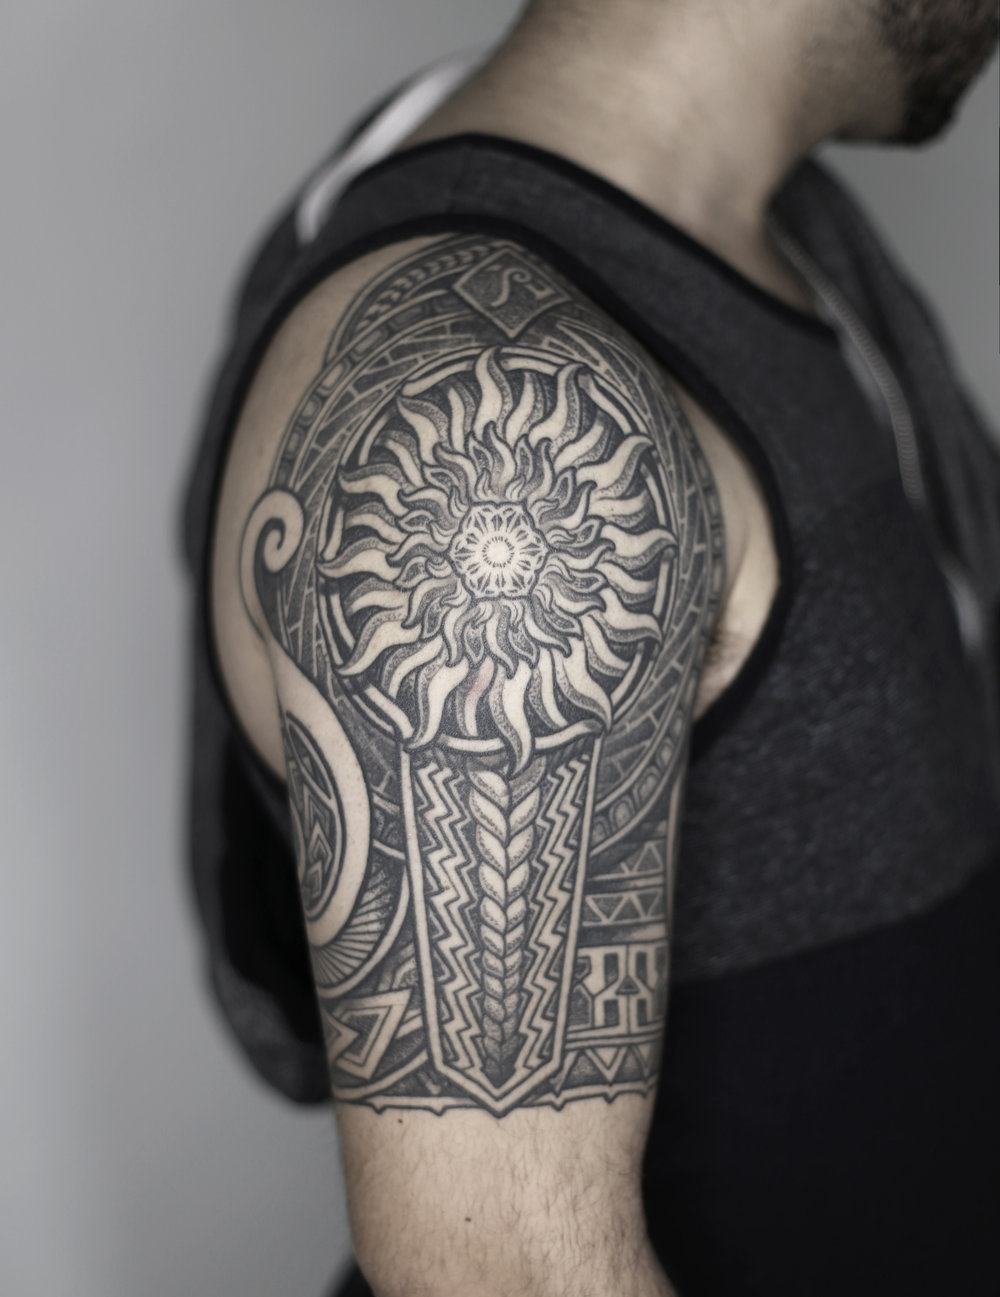 mike tattoo singleton tattoo dallas texas ejay tattoo pattern stipple tribal tattoo samoan tattoo polynesian ink jason call.jpg